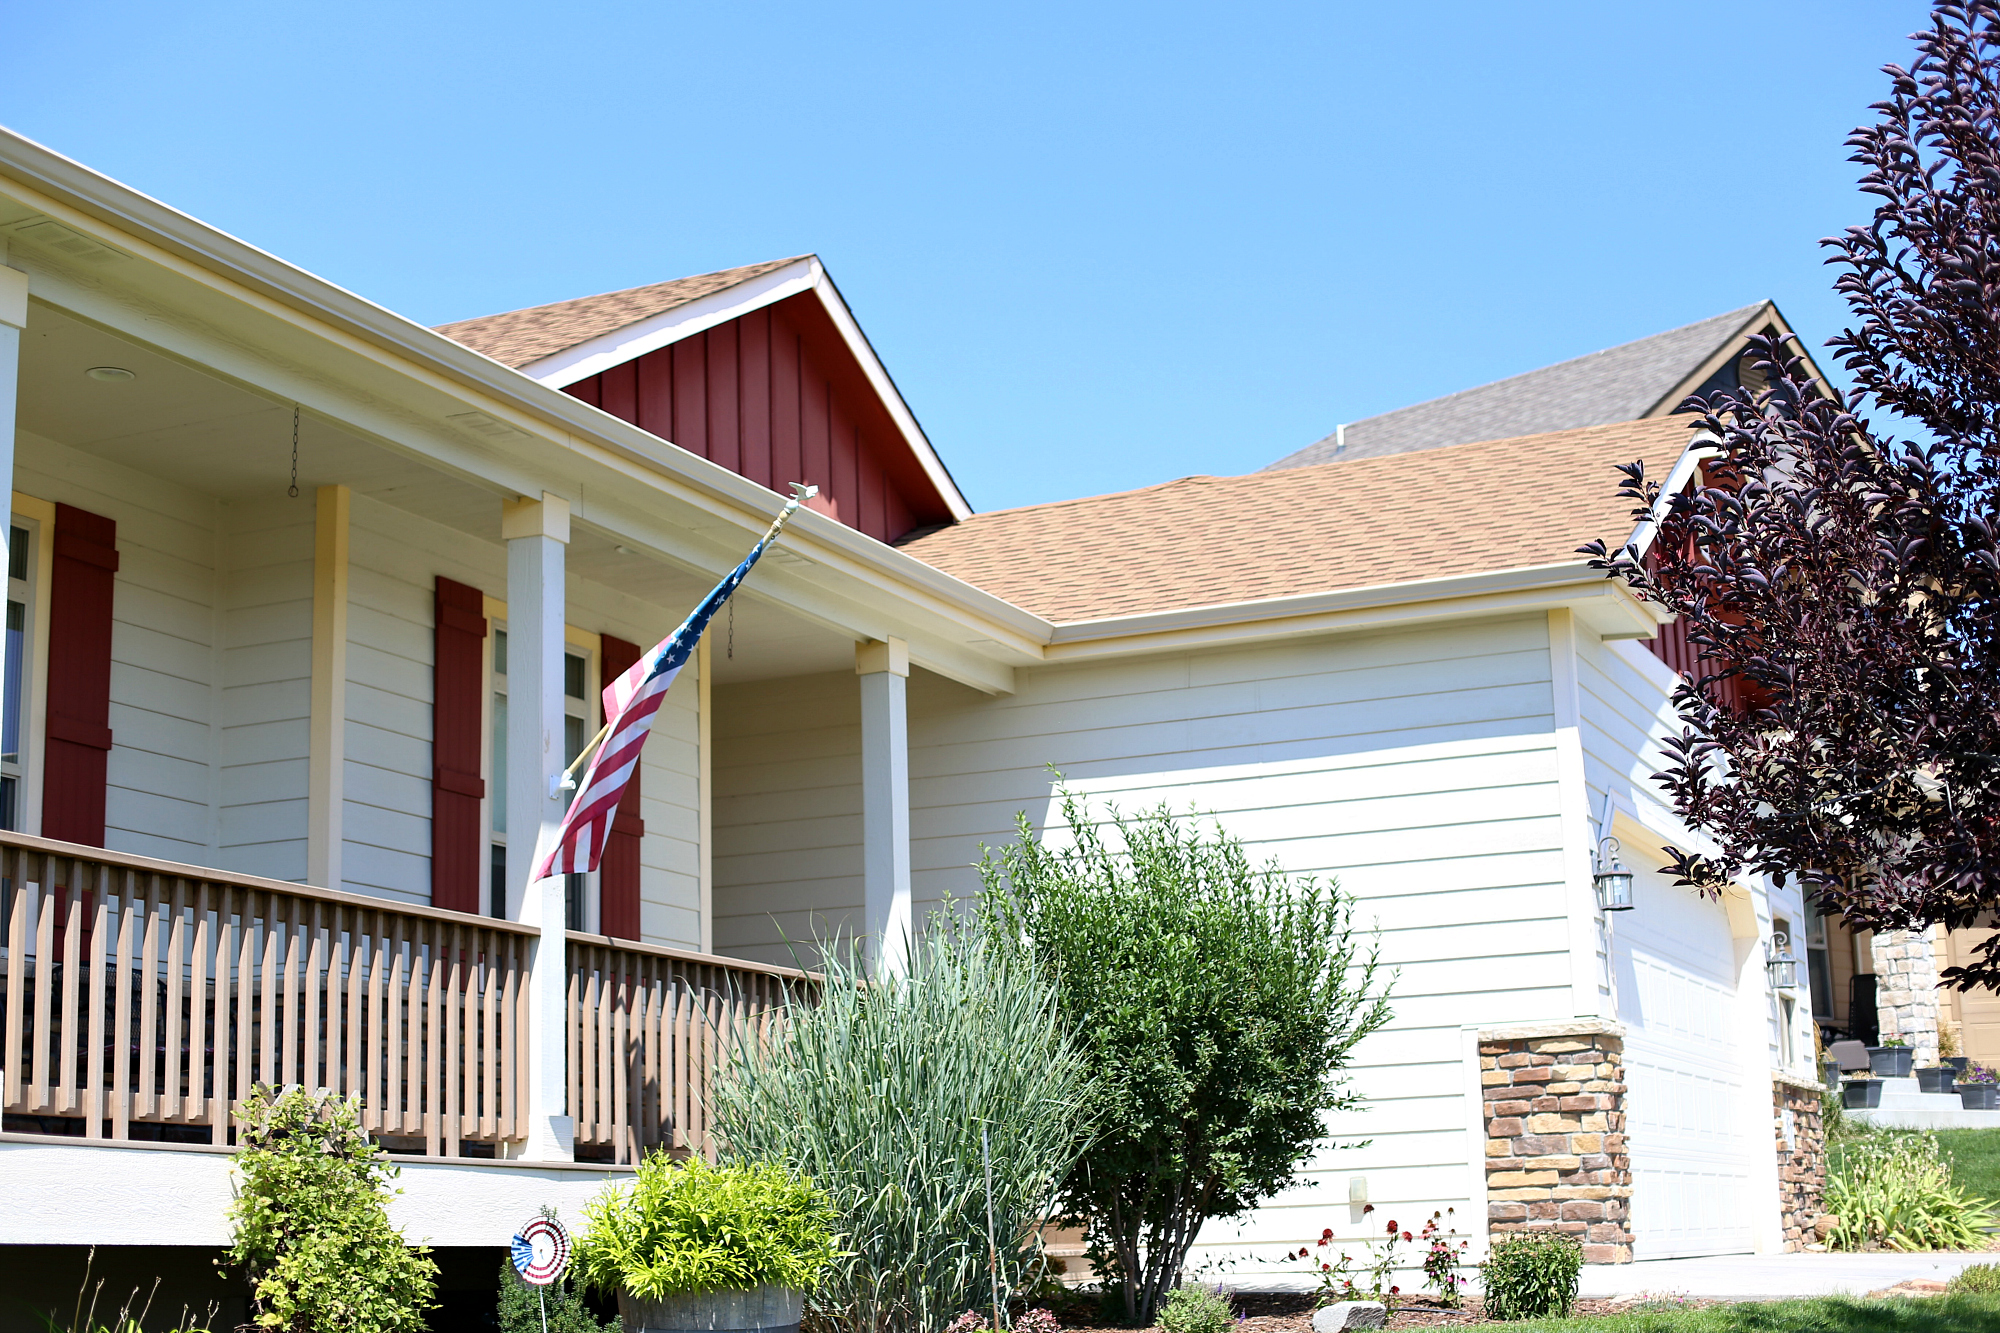 Update Your Home's Exterior and Improve Energy Efficiency with Sears Home Improvement